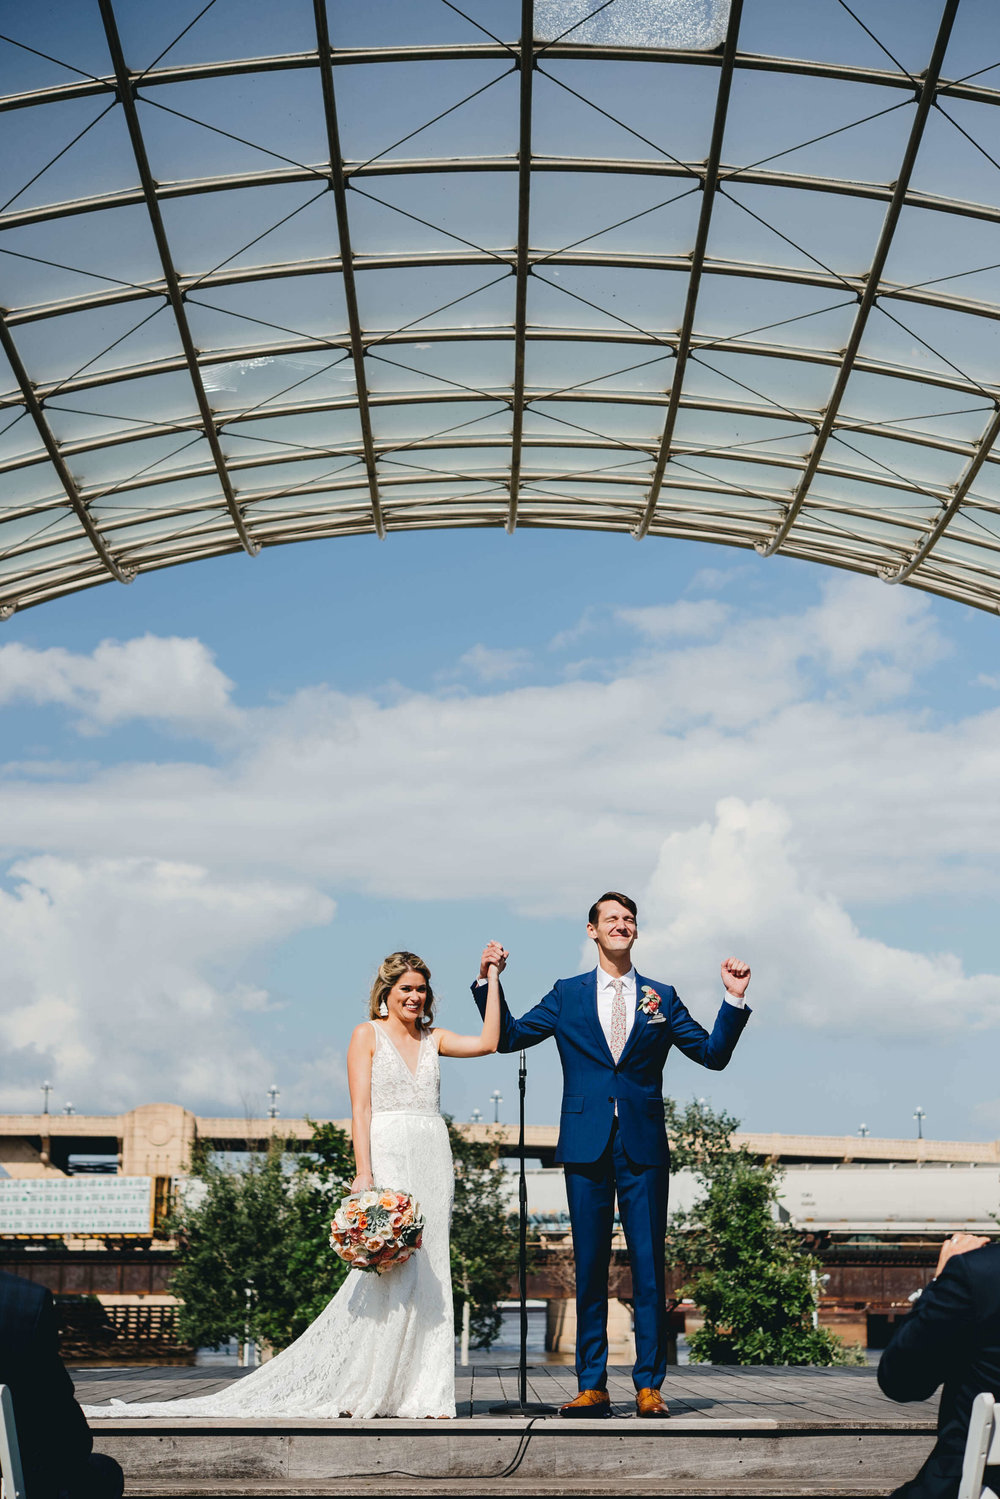 Roy Son Photography | Raspberry Island and Octo Fish bar | Minneapolis wedding planner Sixpence Events | just married!